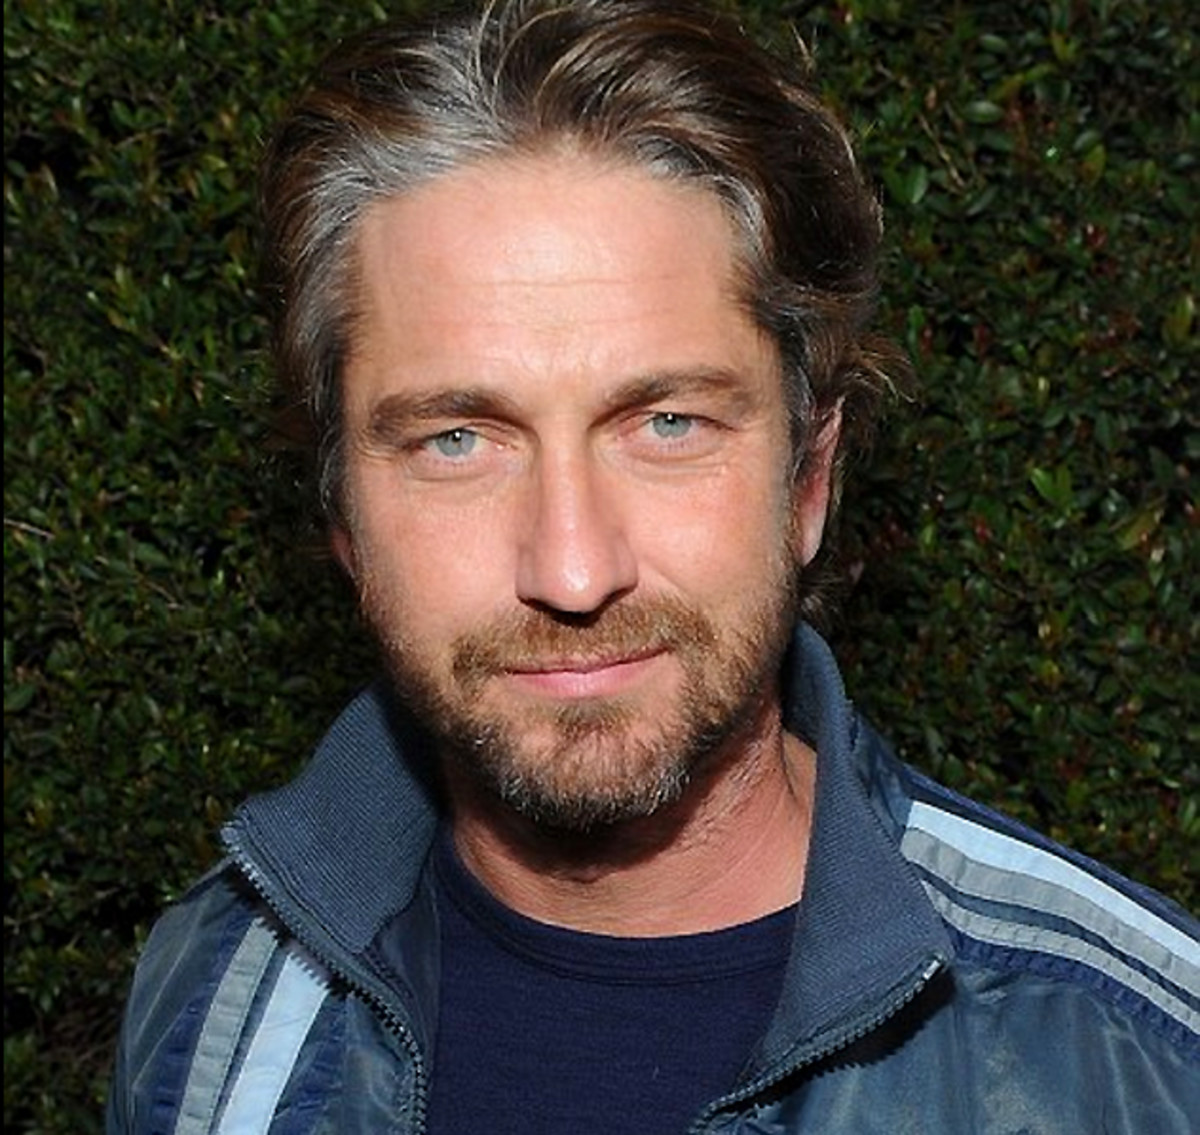 omgre omgrey omgray Gerard Butler and his grey gray roots looks good